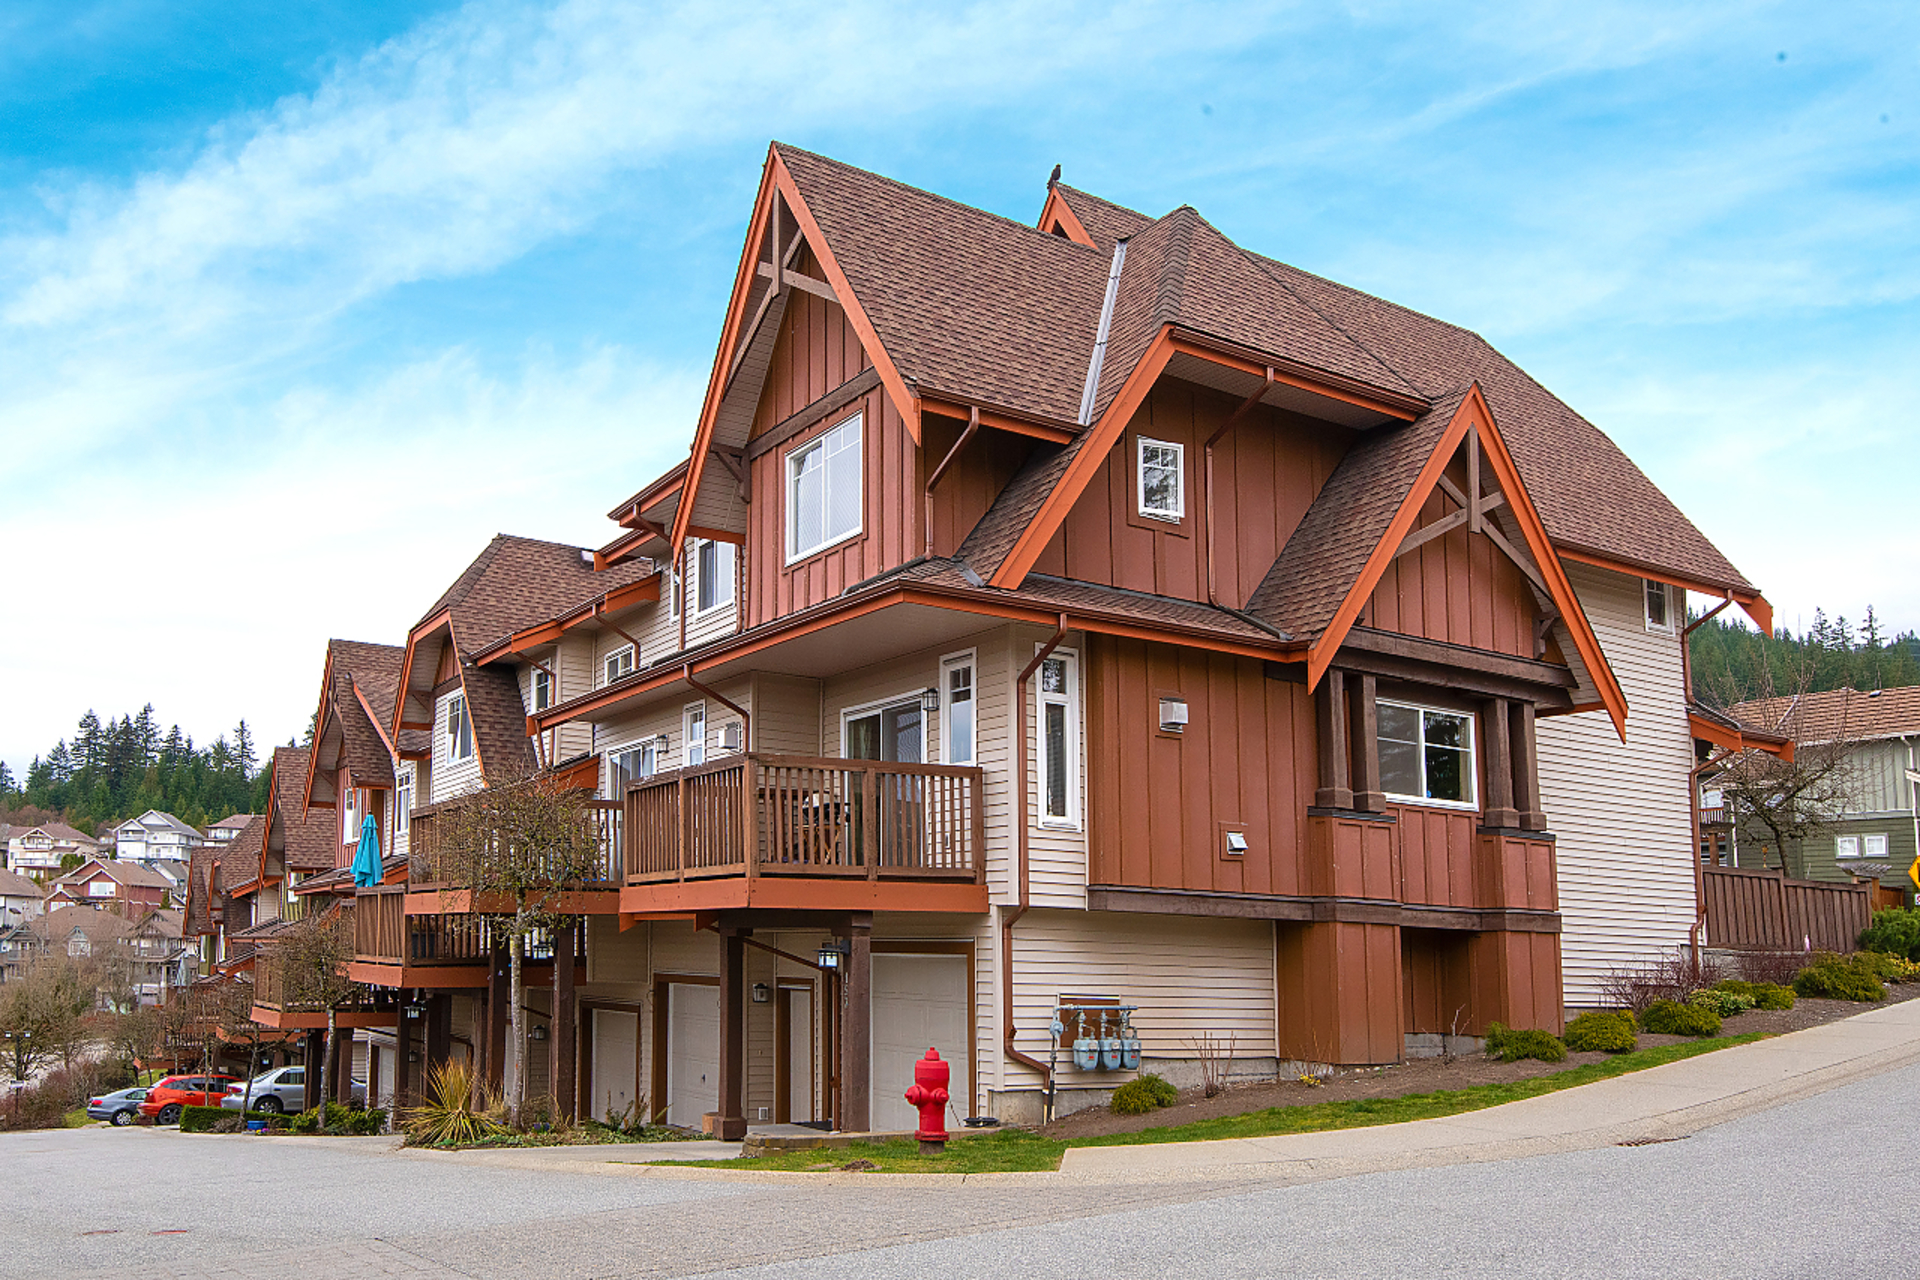 001 at 156 - 2000 Panorama Drive, Heritage Woods PM, Port Moody